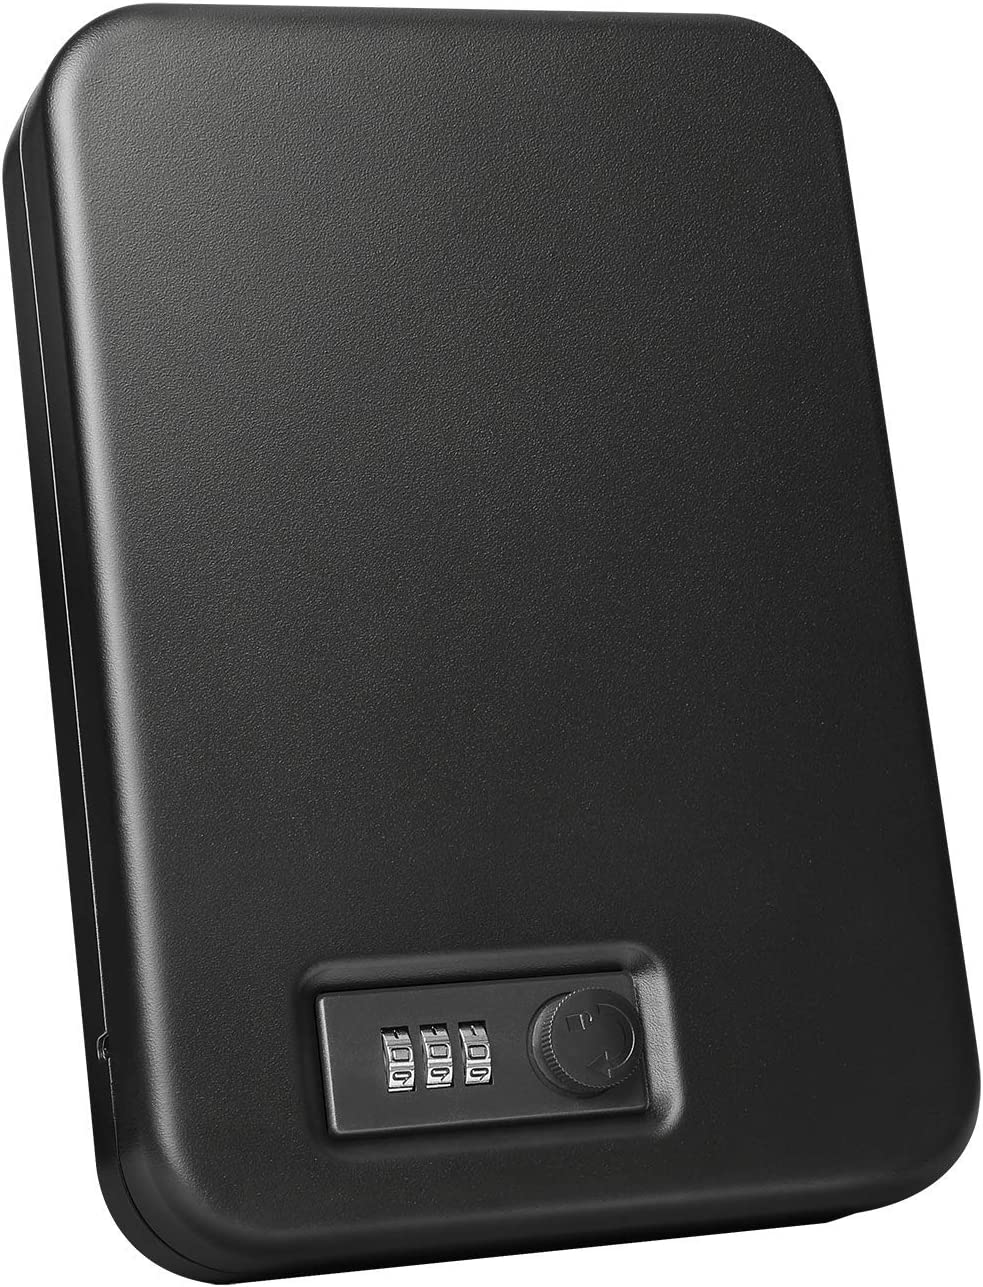 Fortress Portable Safe with Combination Lock, Black (11C10)